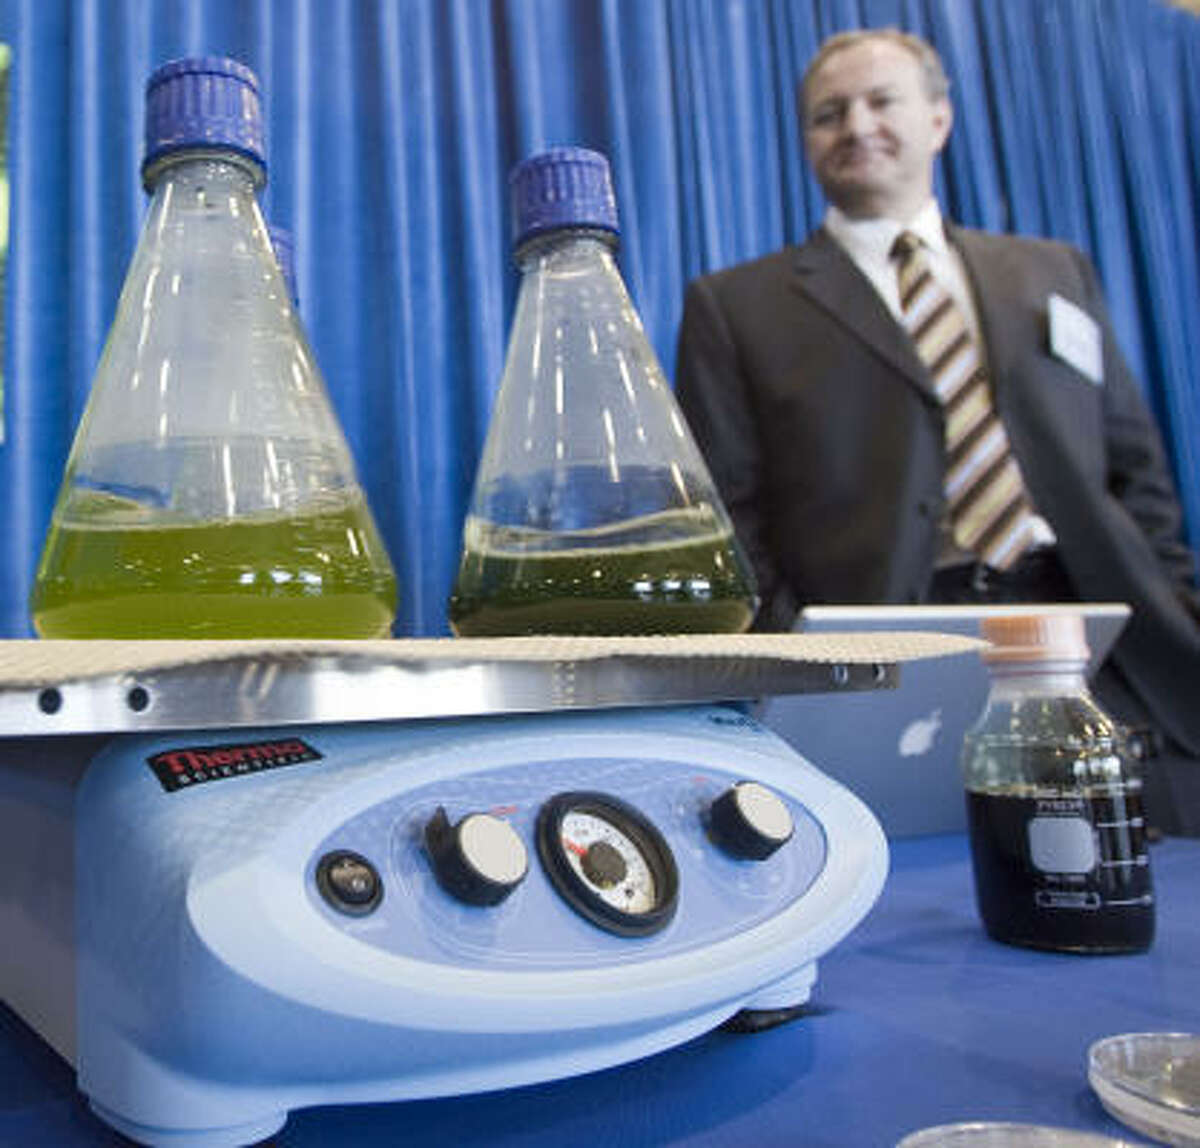 Sapphire Energy's Tim Zenk stands over Sapphire's booth, which illustrates the process of making biofuel from algae during a news conference on the first flight of a Continental Airlines Boeing 737-800 jet aircraft running partially on biofuel on Wednesday.